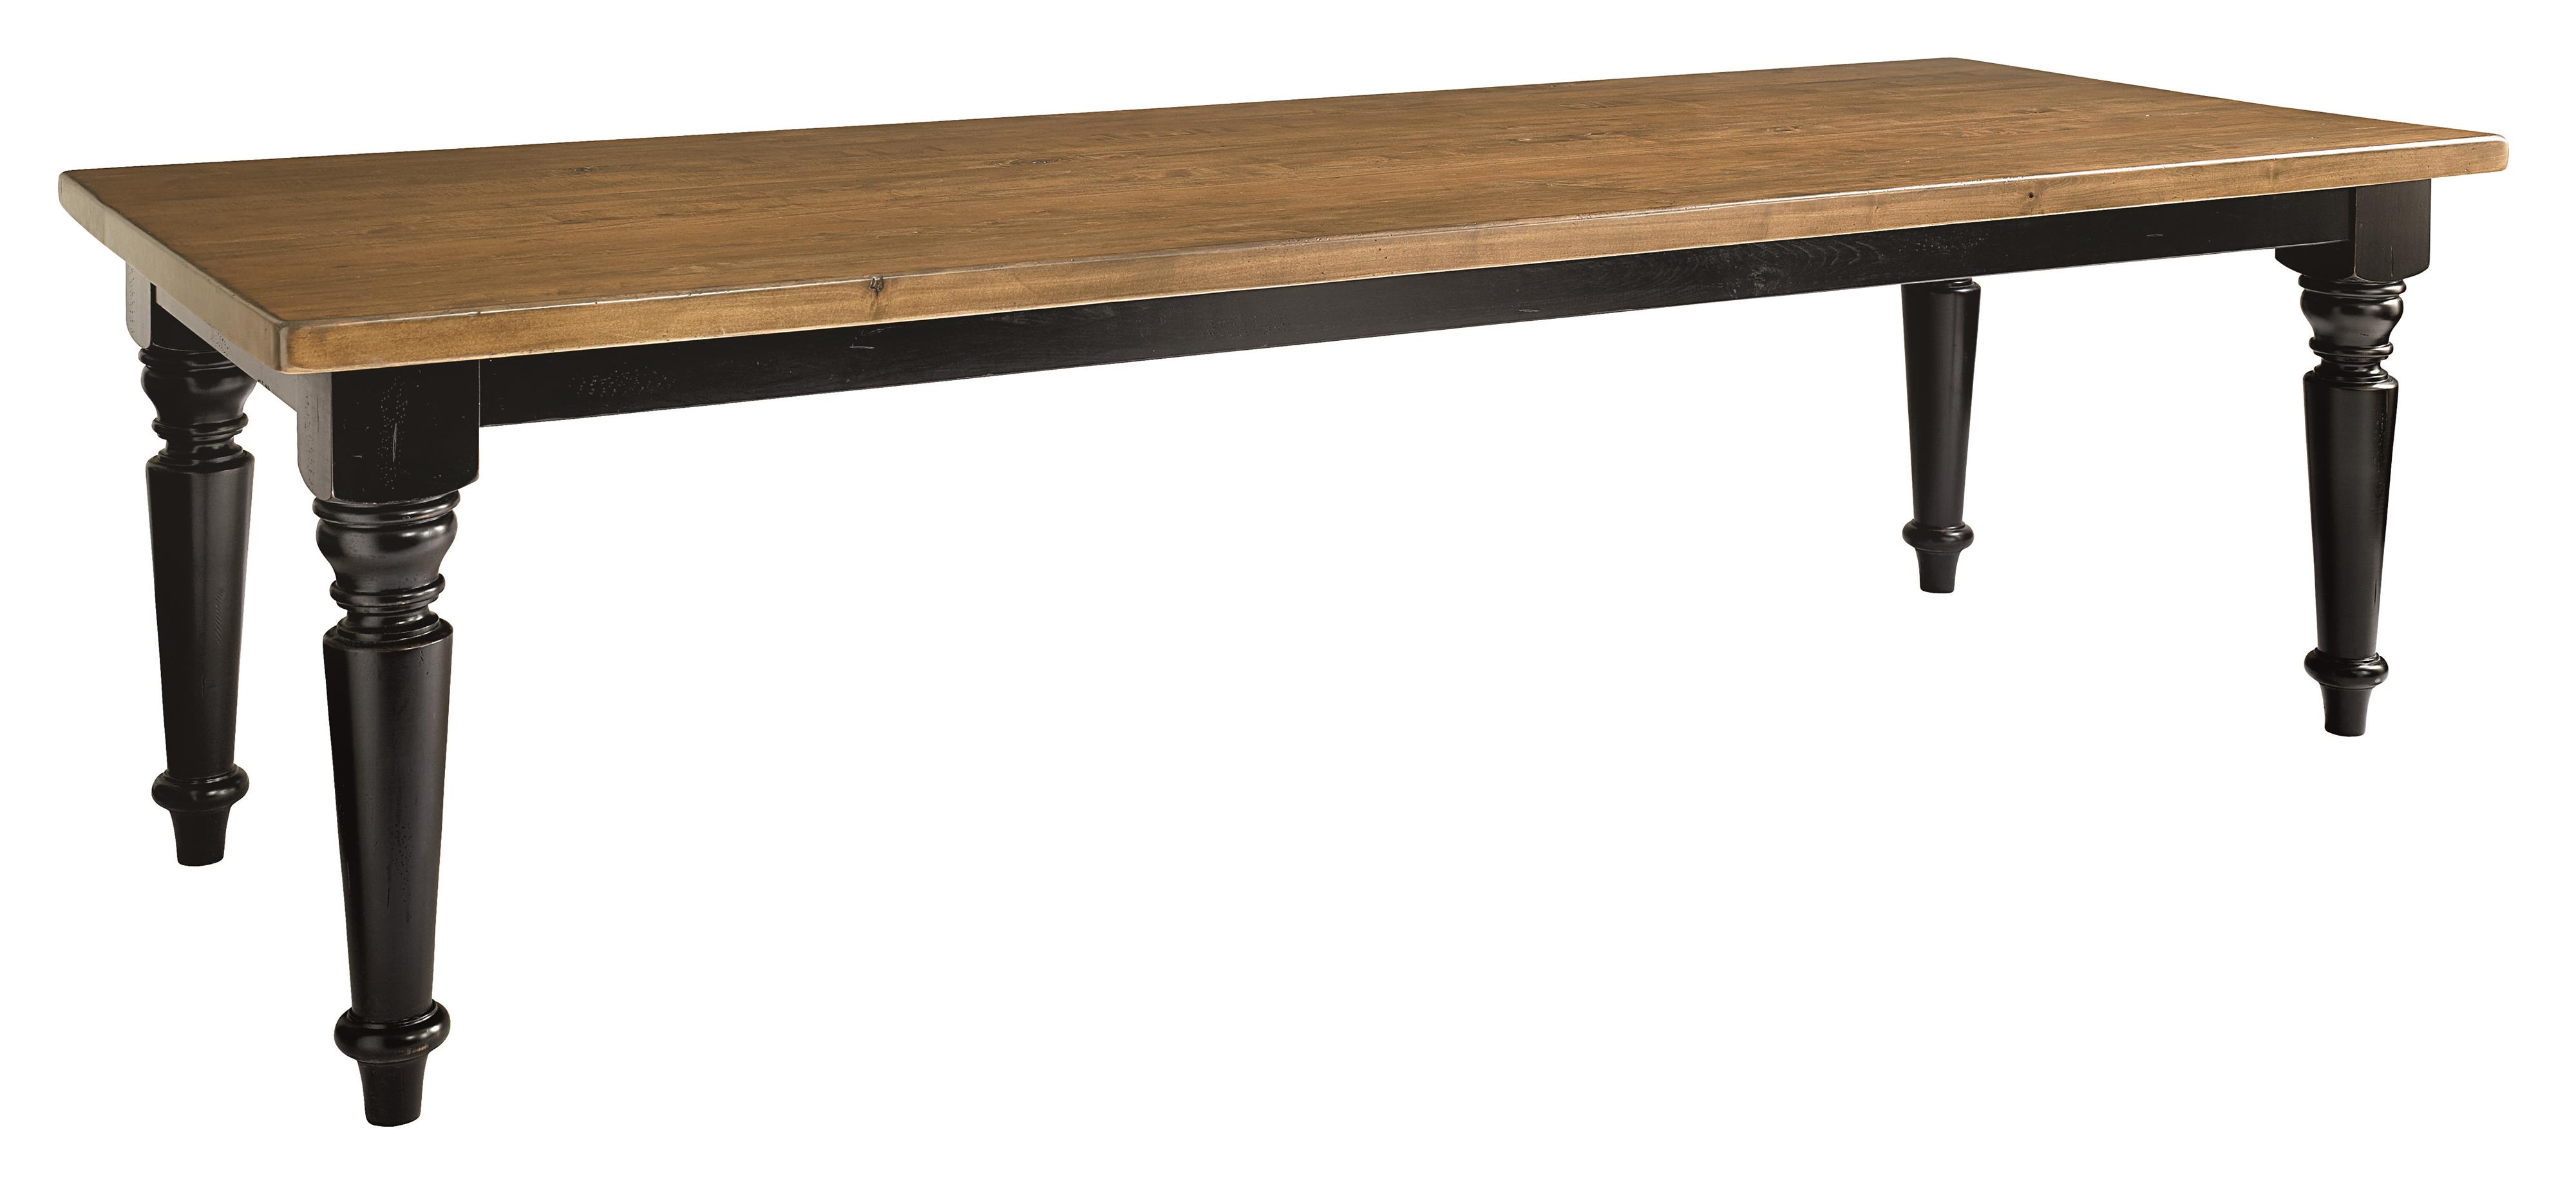 Bassett bench made 4015 4208 108 rectangle farmhouse for John v schultz dining room table